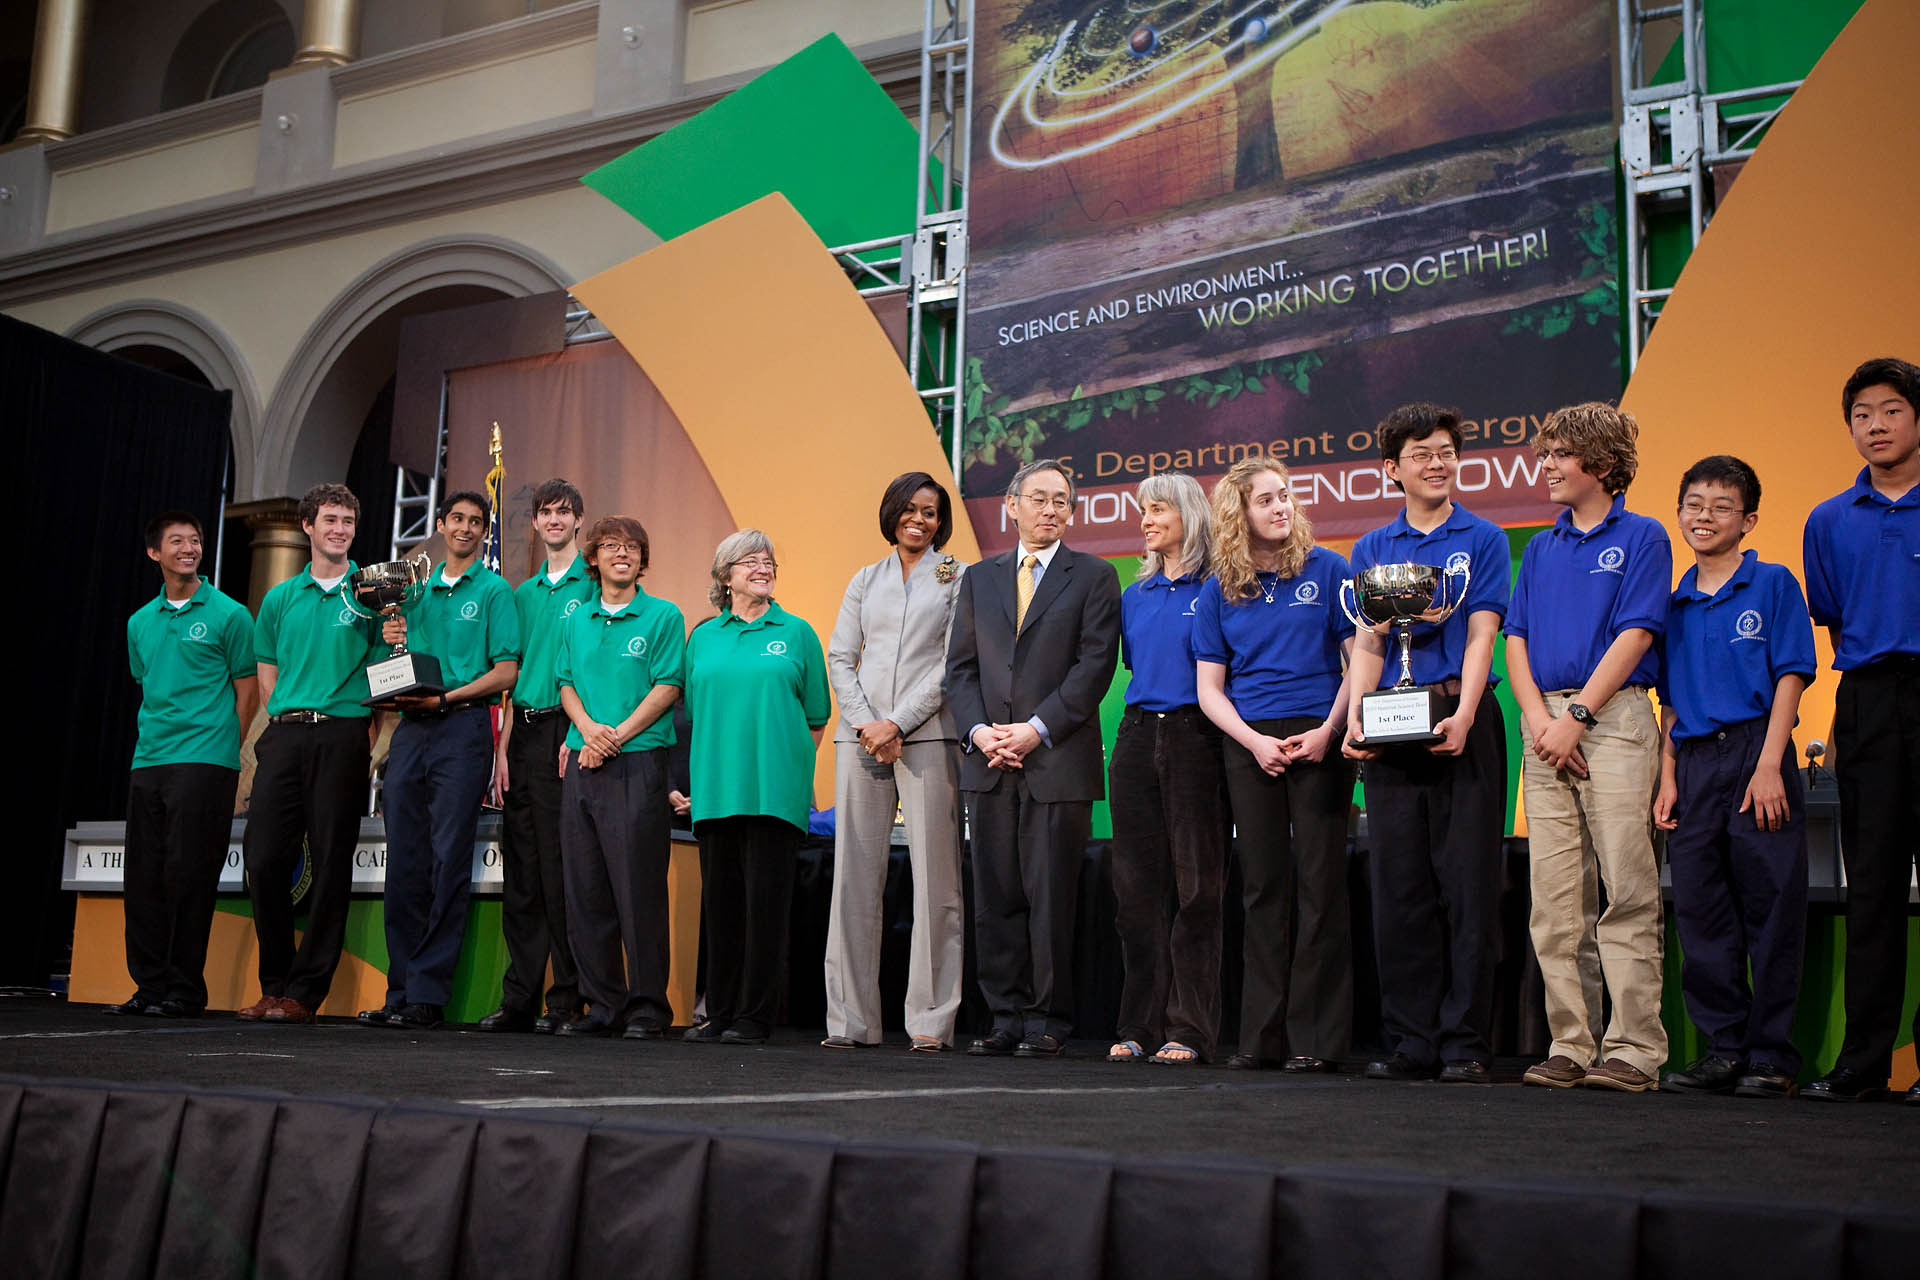 First Lady Michelle Obama and Energy Secretary Steven Chu with the winning teams